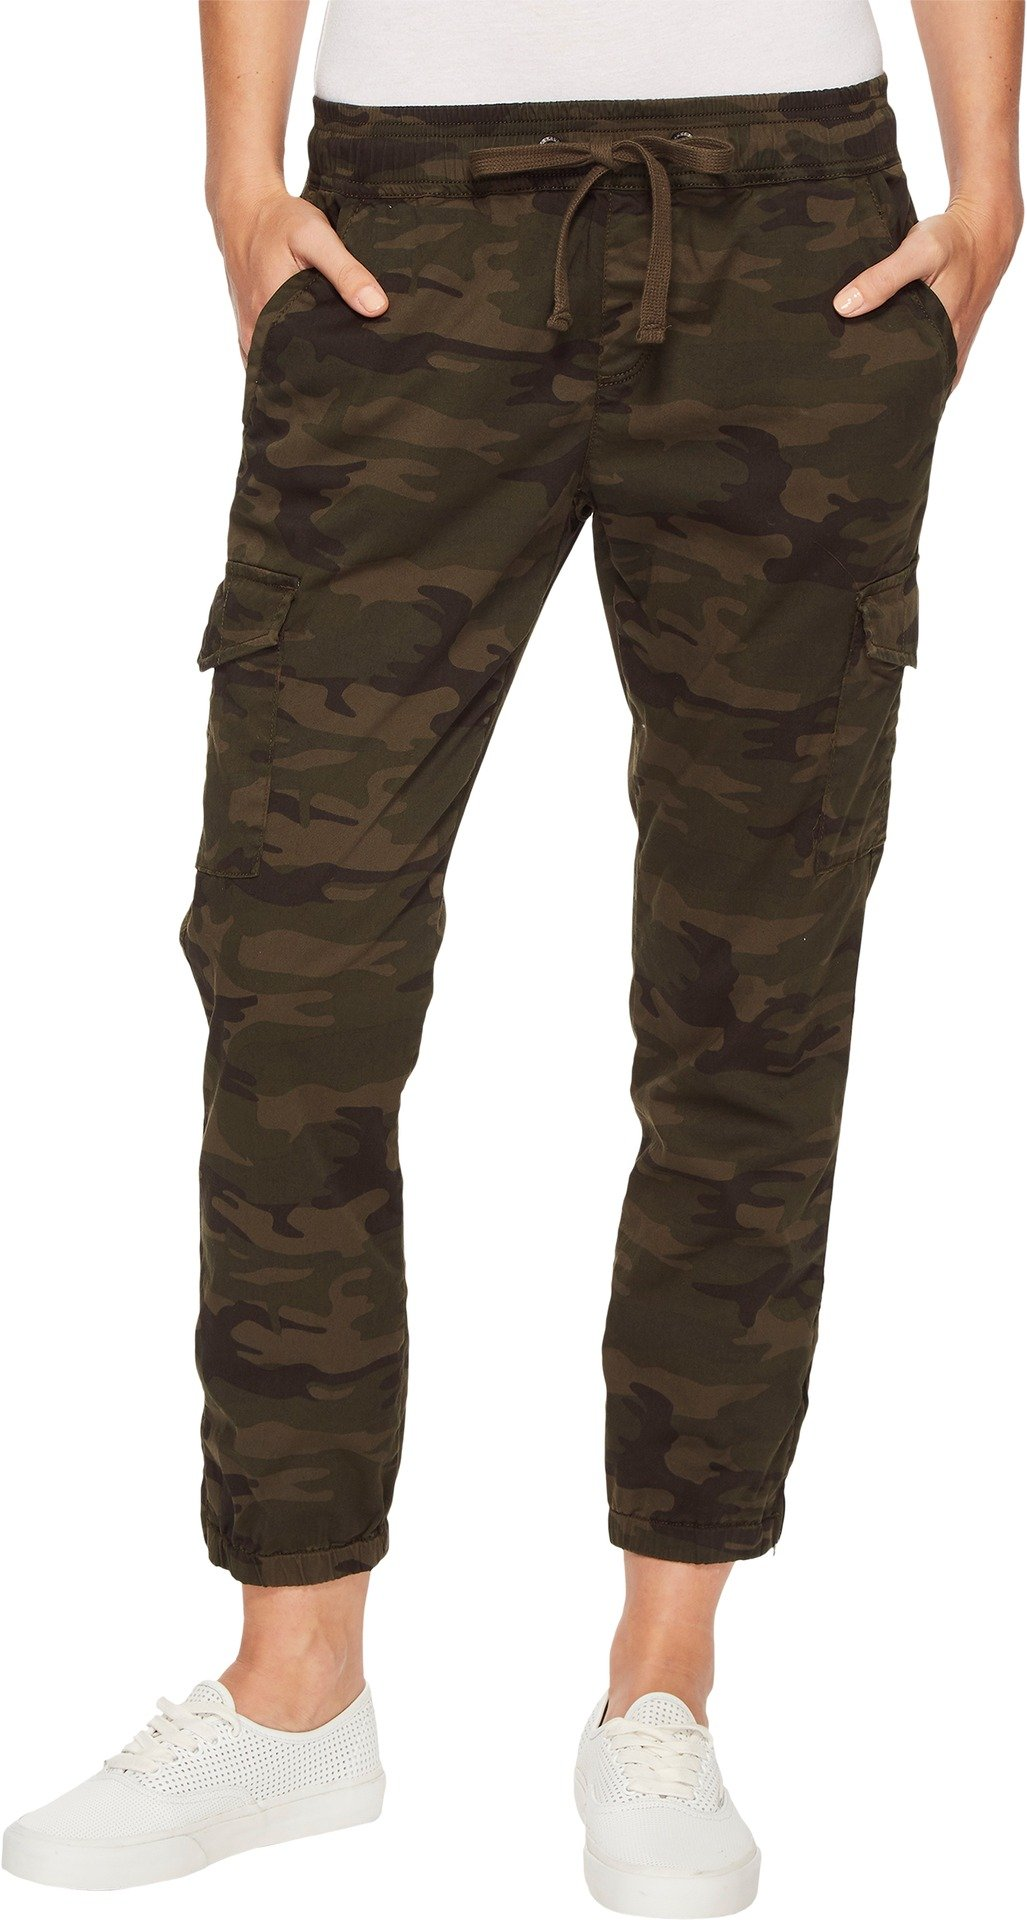 Sanctuary Women's Pull-On Trooper Pants Mother Nature Camo Small